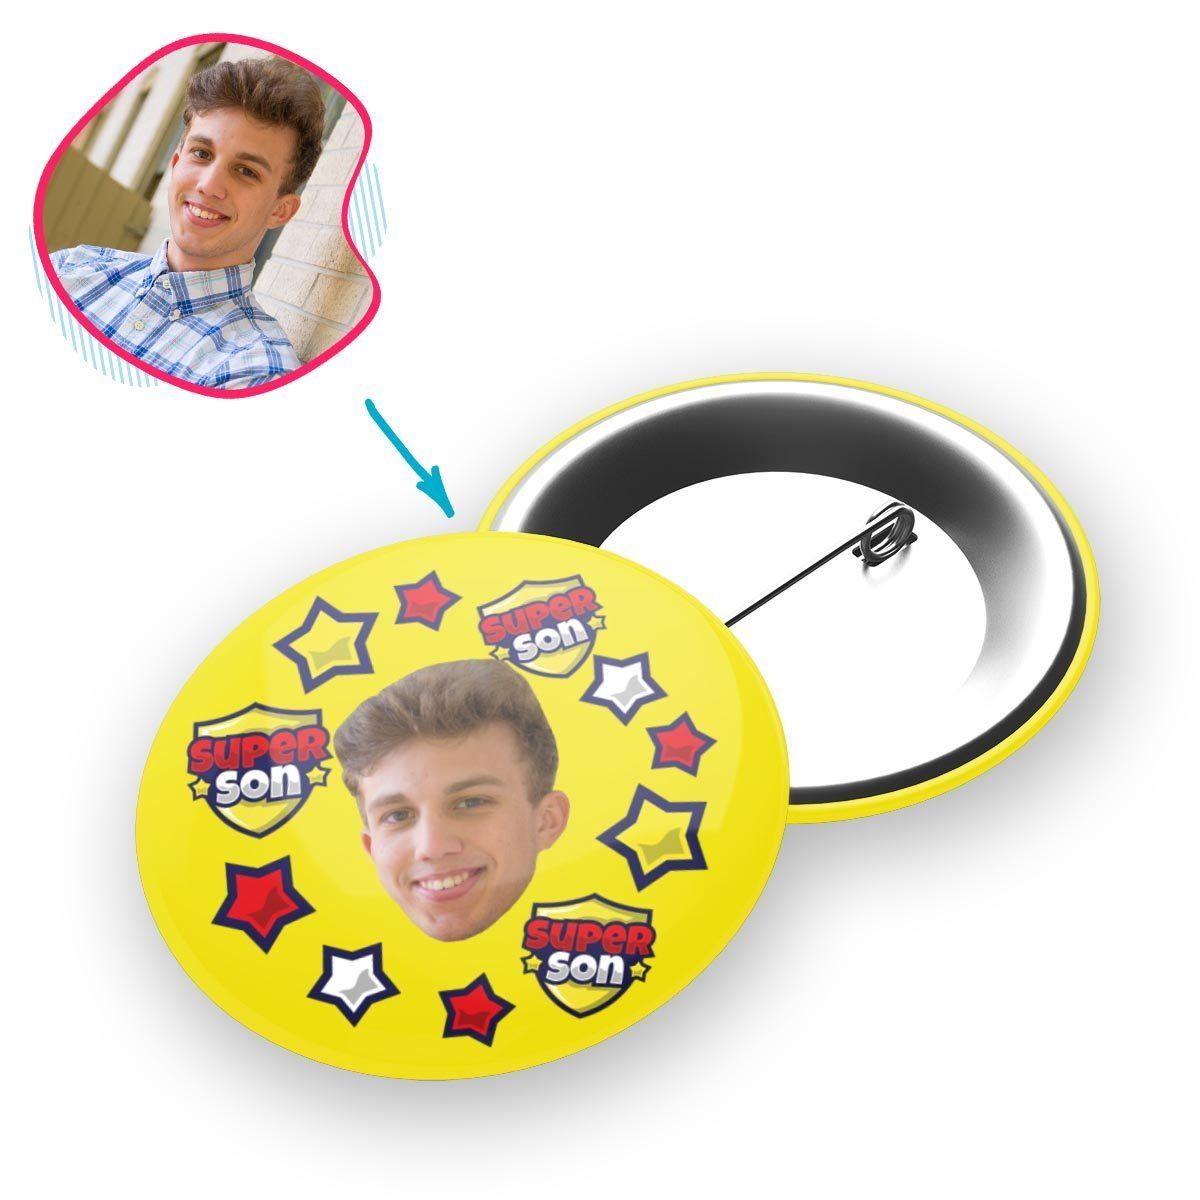 yellow Super Son pin personalized with photo of face printed on it